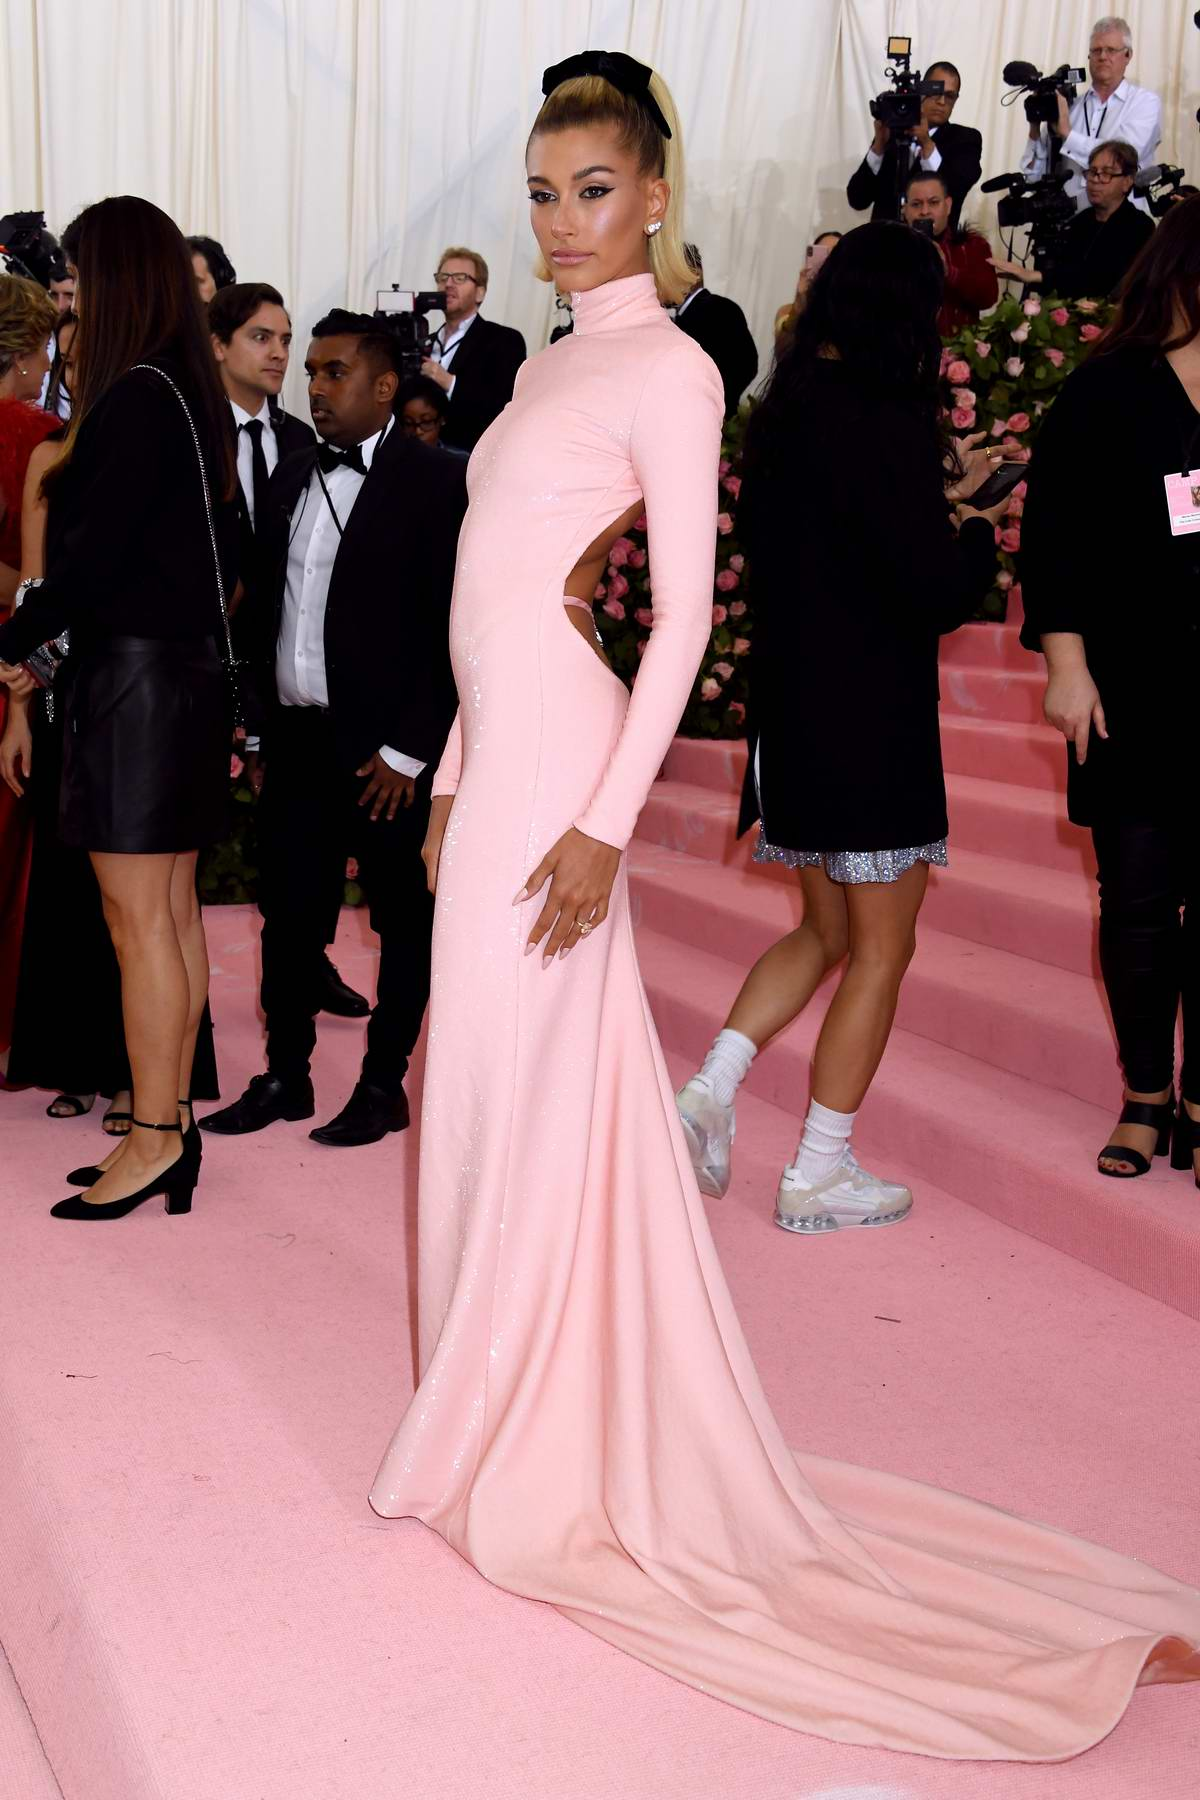 Hailey Baldwin attends The 2019 Met Gala Celebrating Camp: Notes on Fashion in New York City